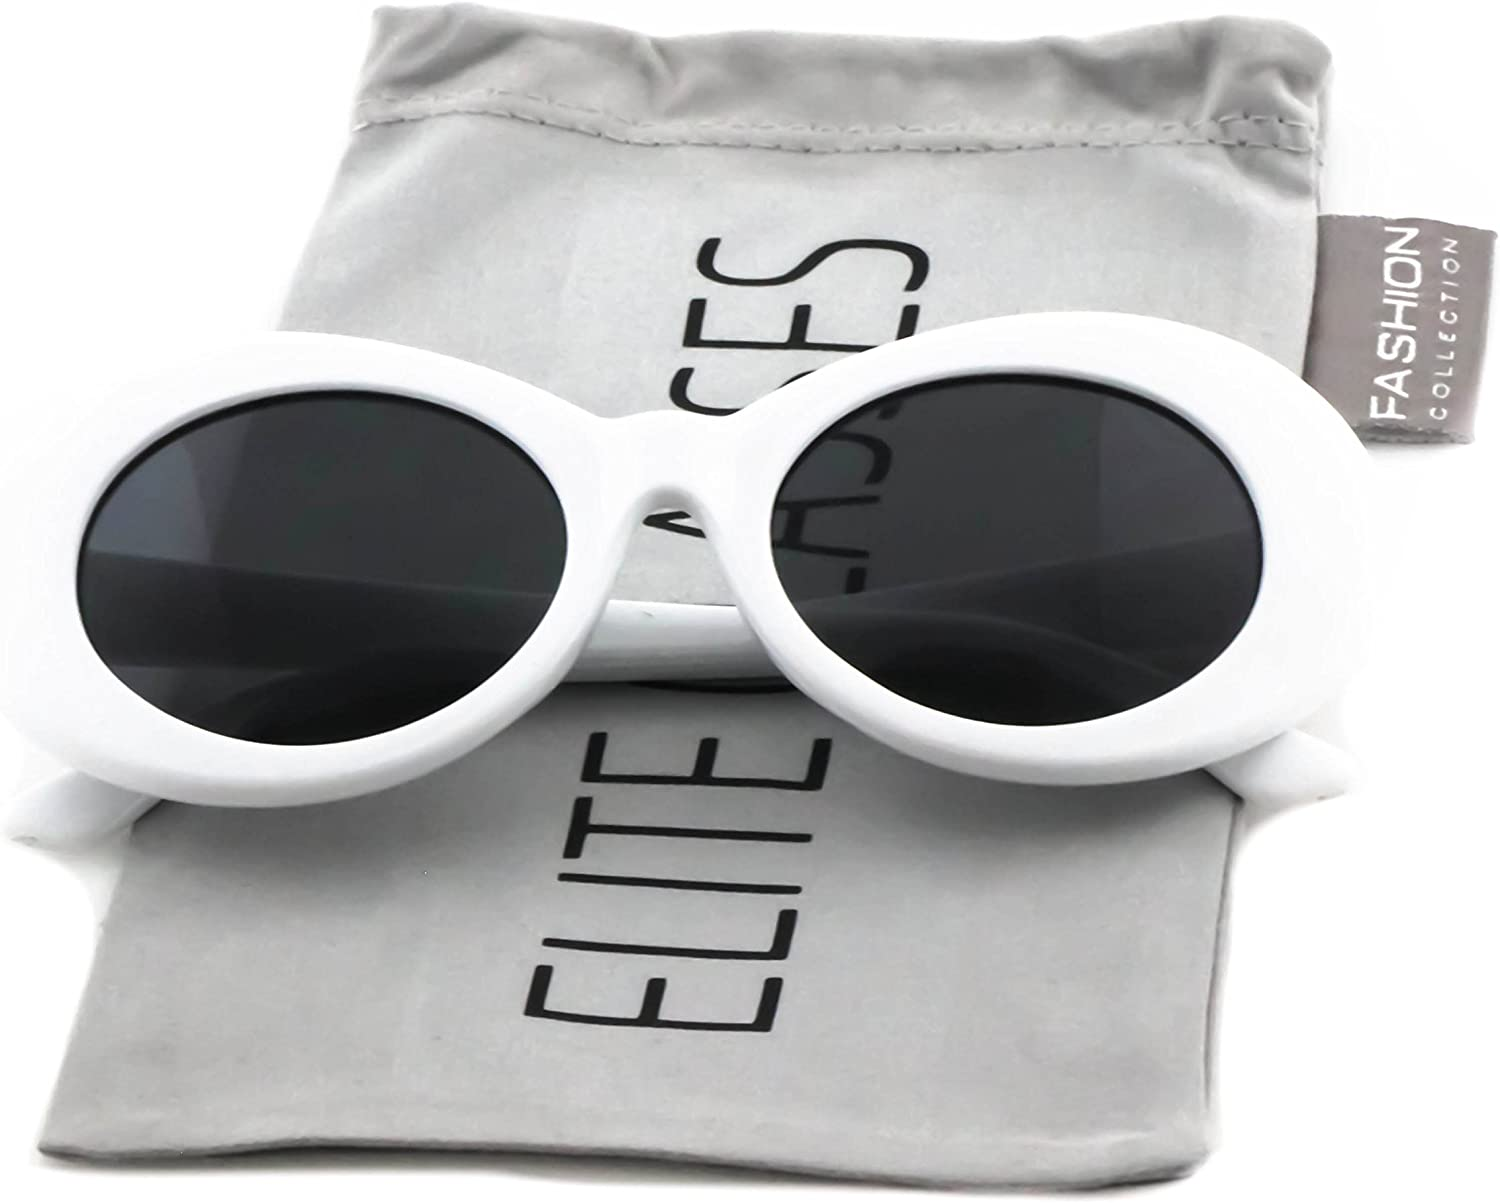 Clout Goggles Oval Mod Retro Thick Frame Rapper Hypebeast Eyewear Supreme Glasses Cool Sunglasses